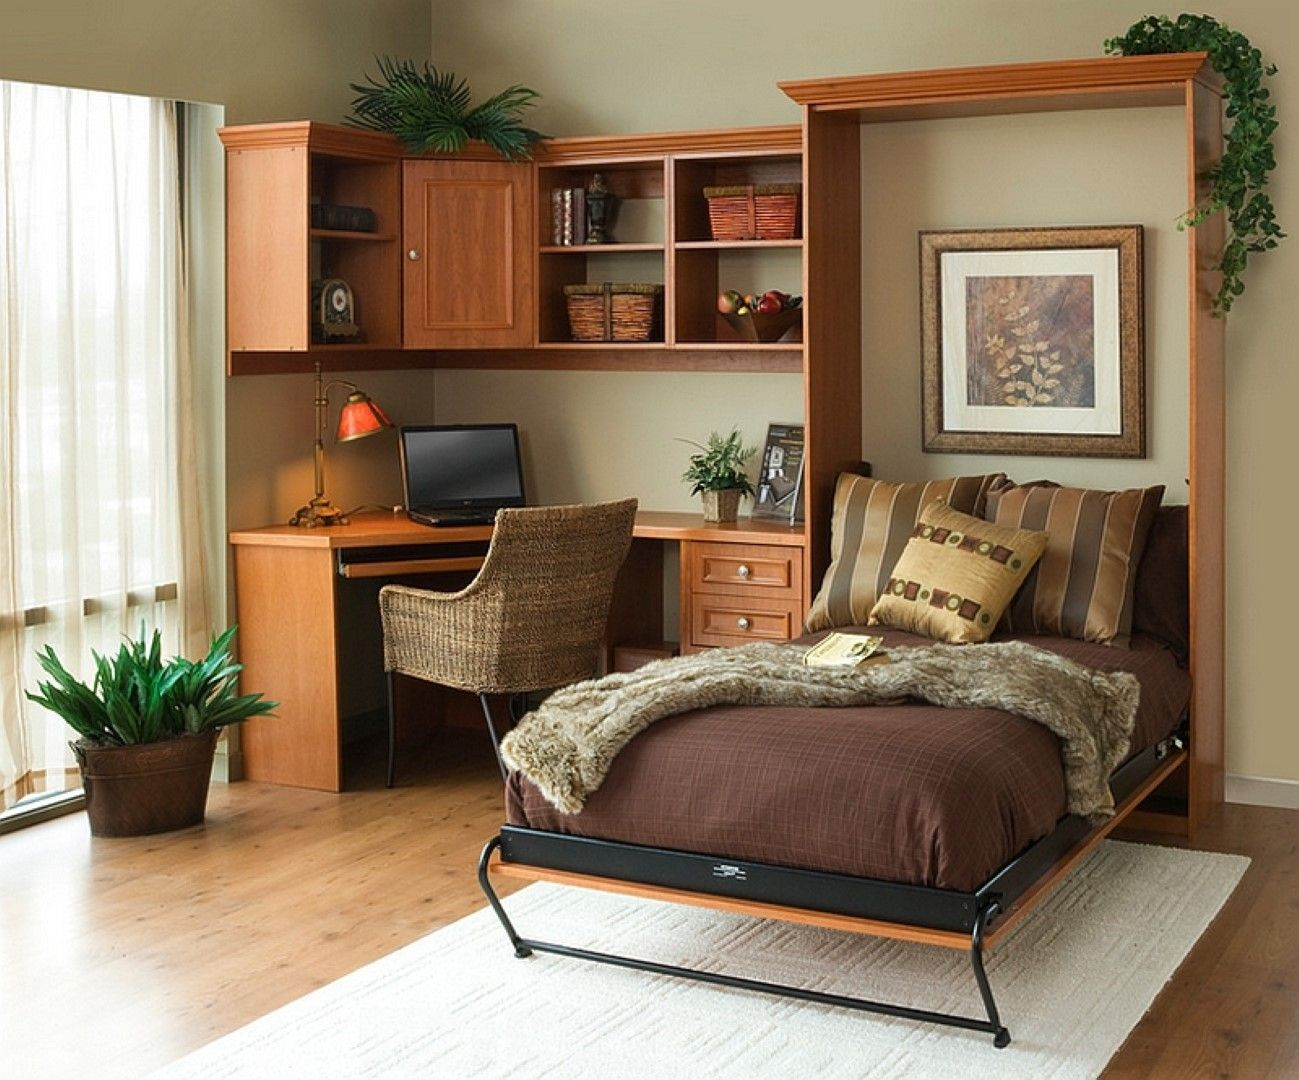 Sketch Of Comfortable Bedroom Design With Murphy Bed Kit Lowes